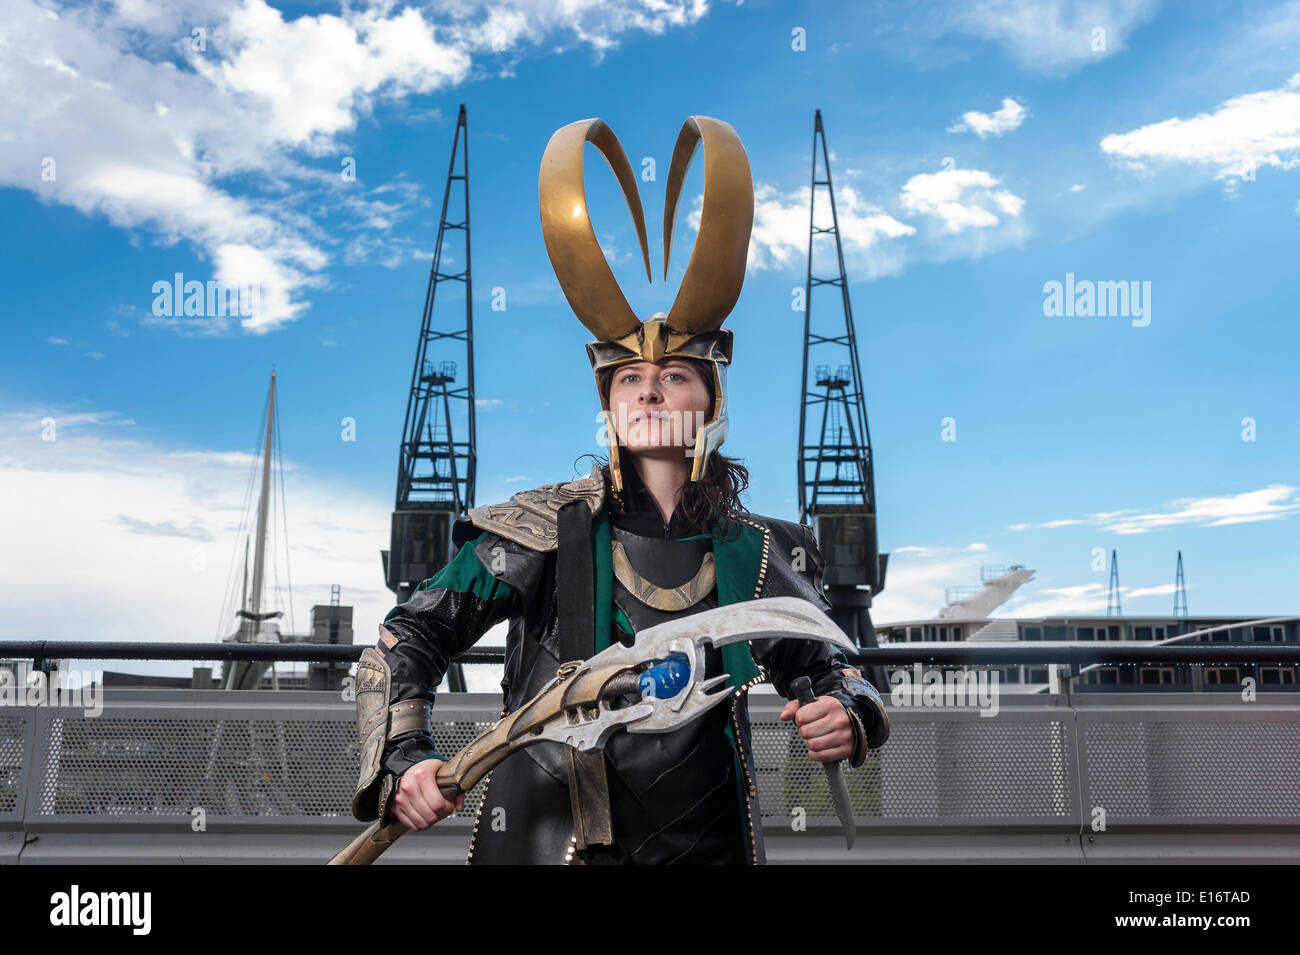 London, UK, 24 May 2014 - comic book fans and cosplay artists gather at the Excel Centre in Royal Victoria Docks at the bi-annual London Comic Con festival.  Many participants had spent a lot of money and time perfecting their costumes.  Pictured - Loki from the Thor movies. Credit:  Stephen Chung/Alamy Live News - Stock Image